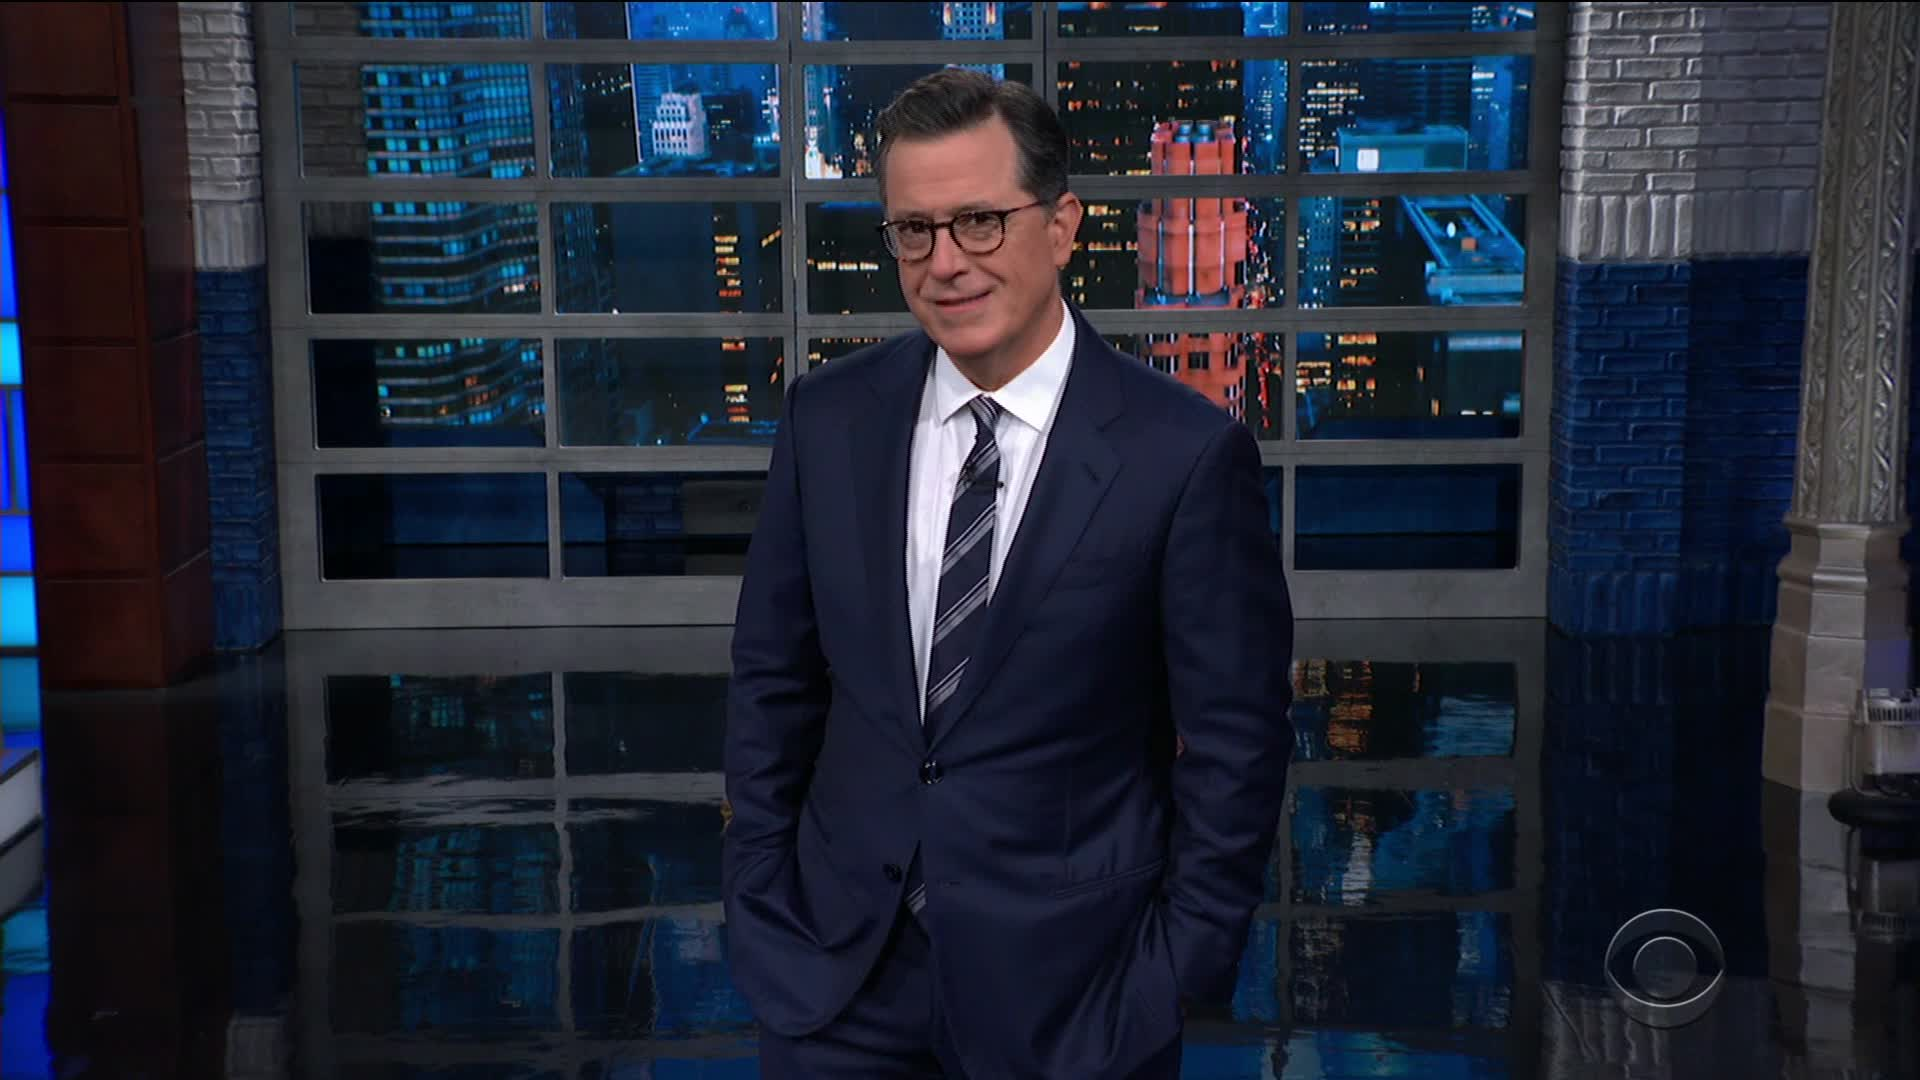 Stephen Colbert needs a haircut, too